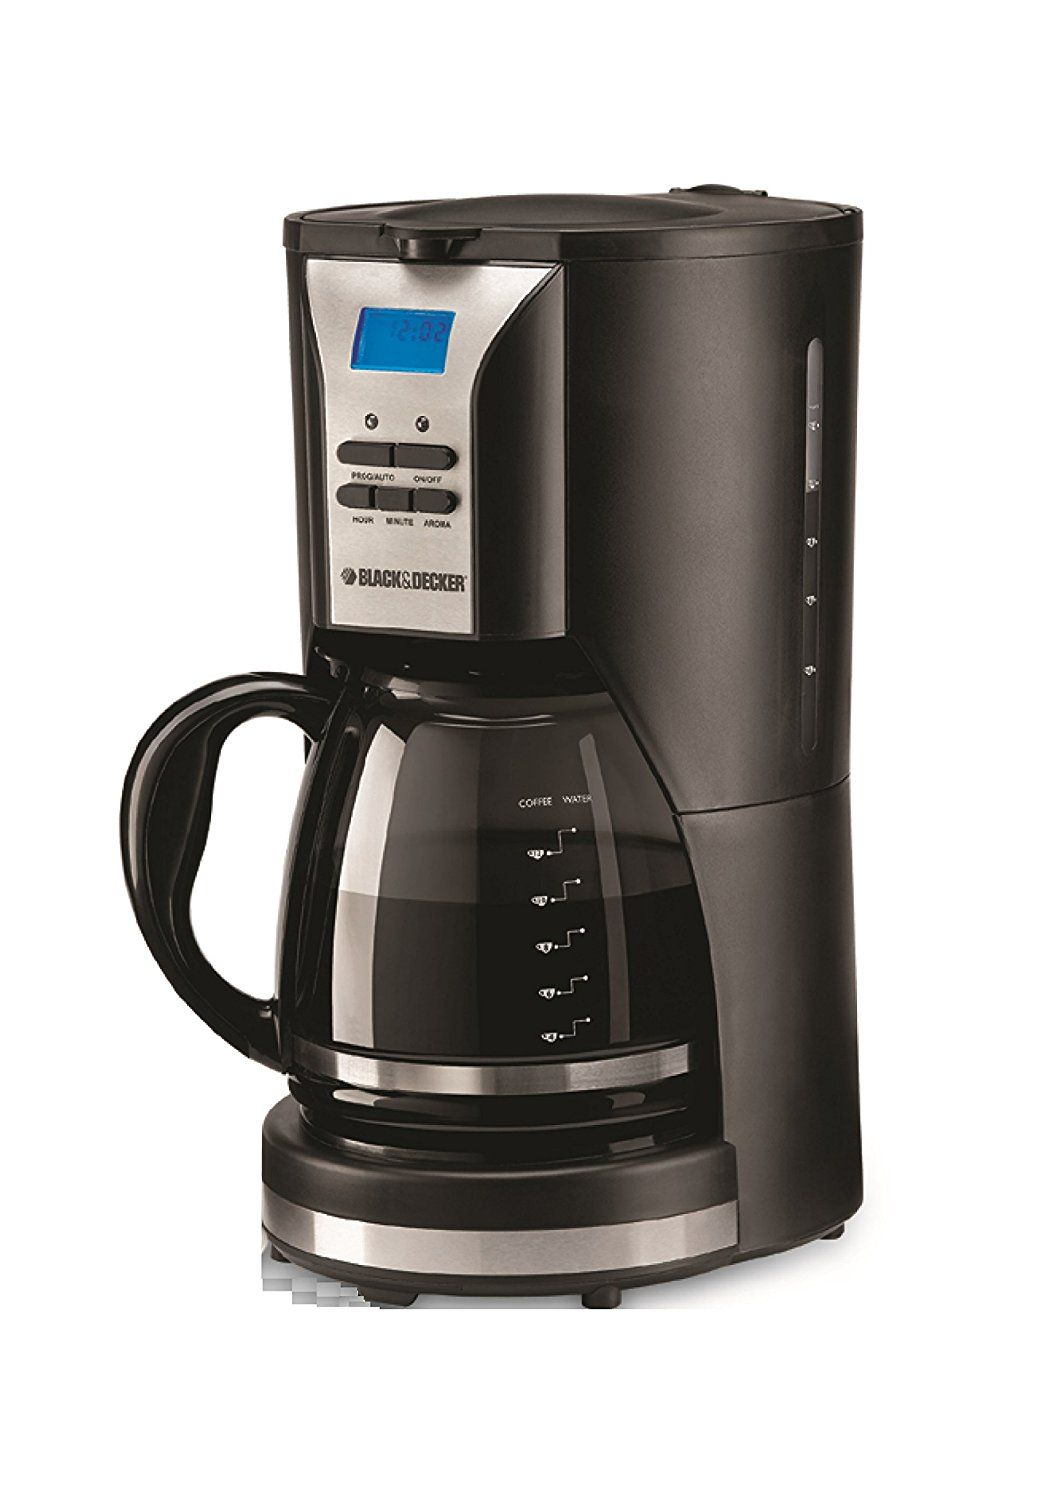 Black And Decker Dcm90 1000w 12 Cup Coffee Maker Non Usa Compliant Black More Infor At The Link Of Image Coffee Ma Coffee Maker Black Decker Coffee